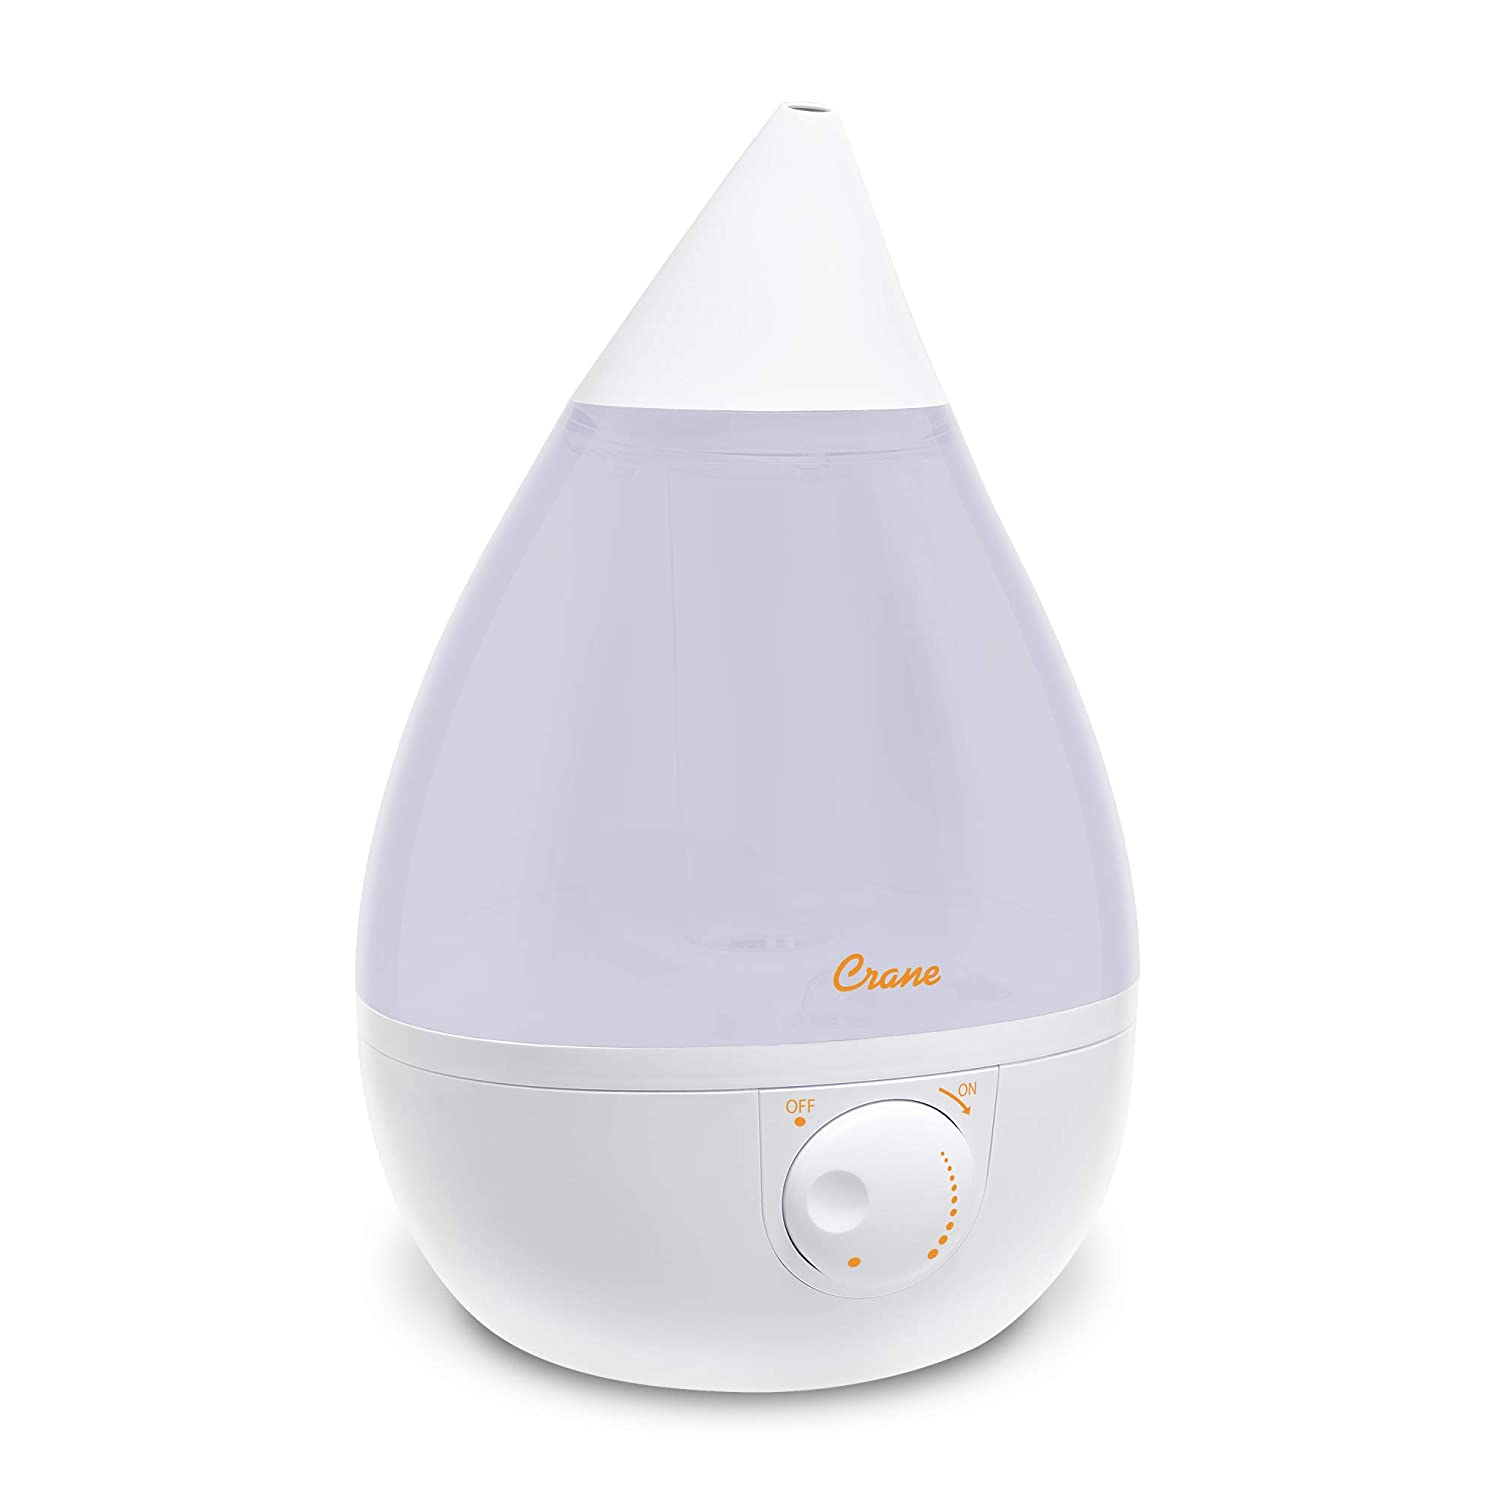 Crane USA Warm Mist Humidifier in White